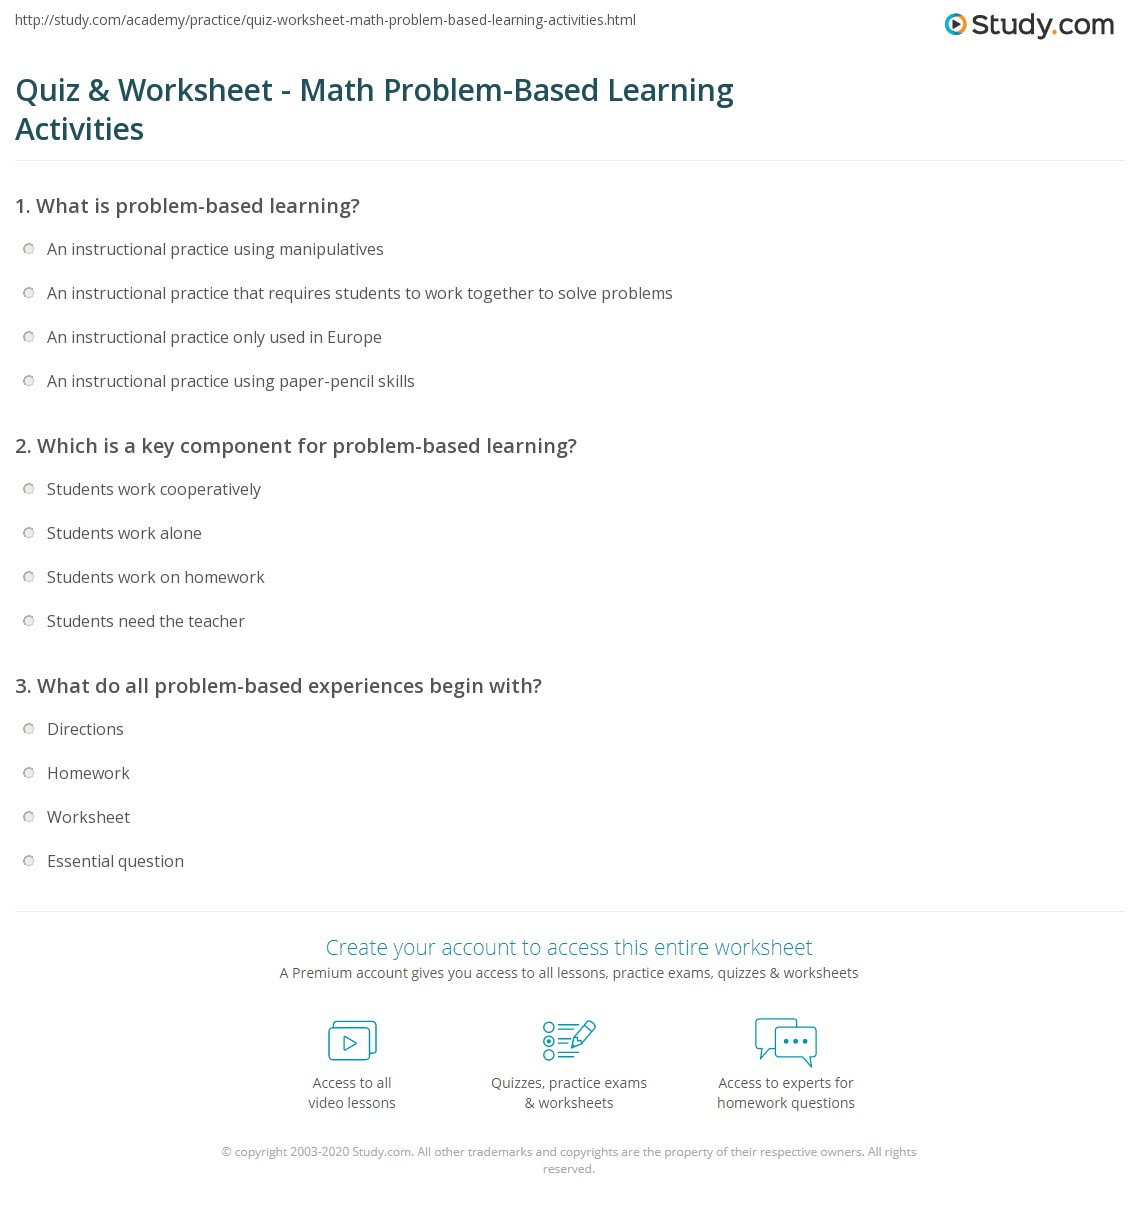 Quiz & Worksheet - Math Problem-Based Learning Activities | Study.com